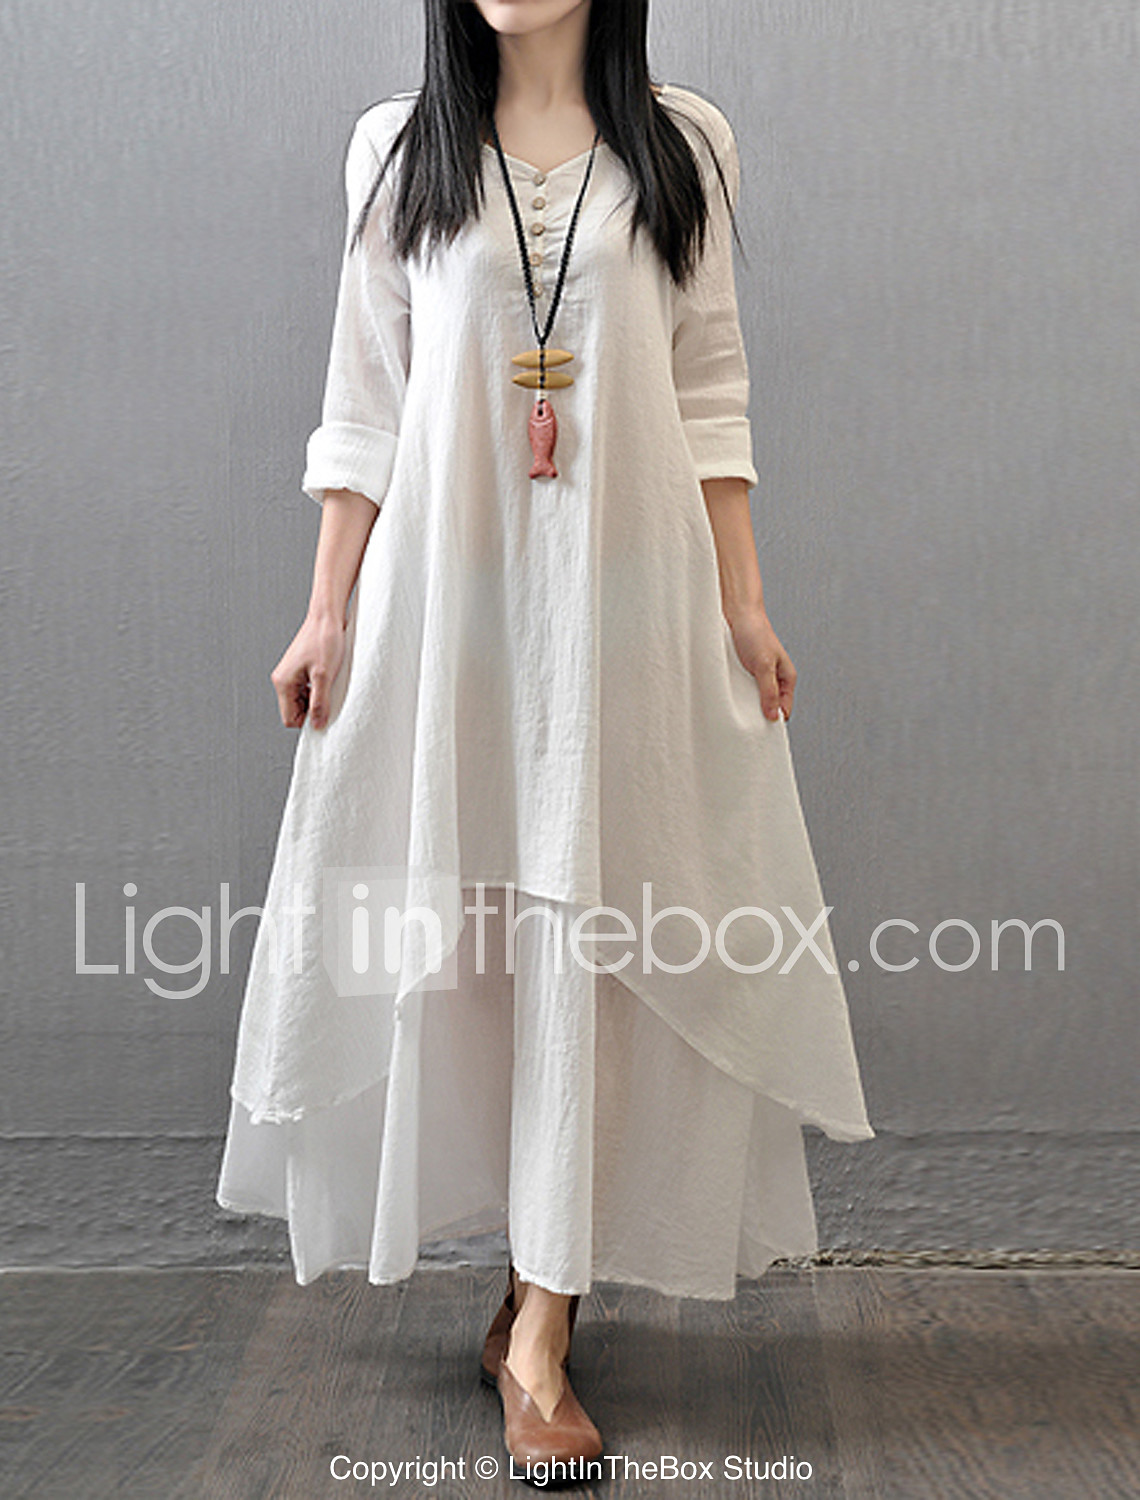 Christmas dress attire for age 57 - Women S Casual Daily Simple Chinoiserie Loose Dress Solid V Neck Maxi Long Sleeve Cotton